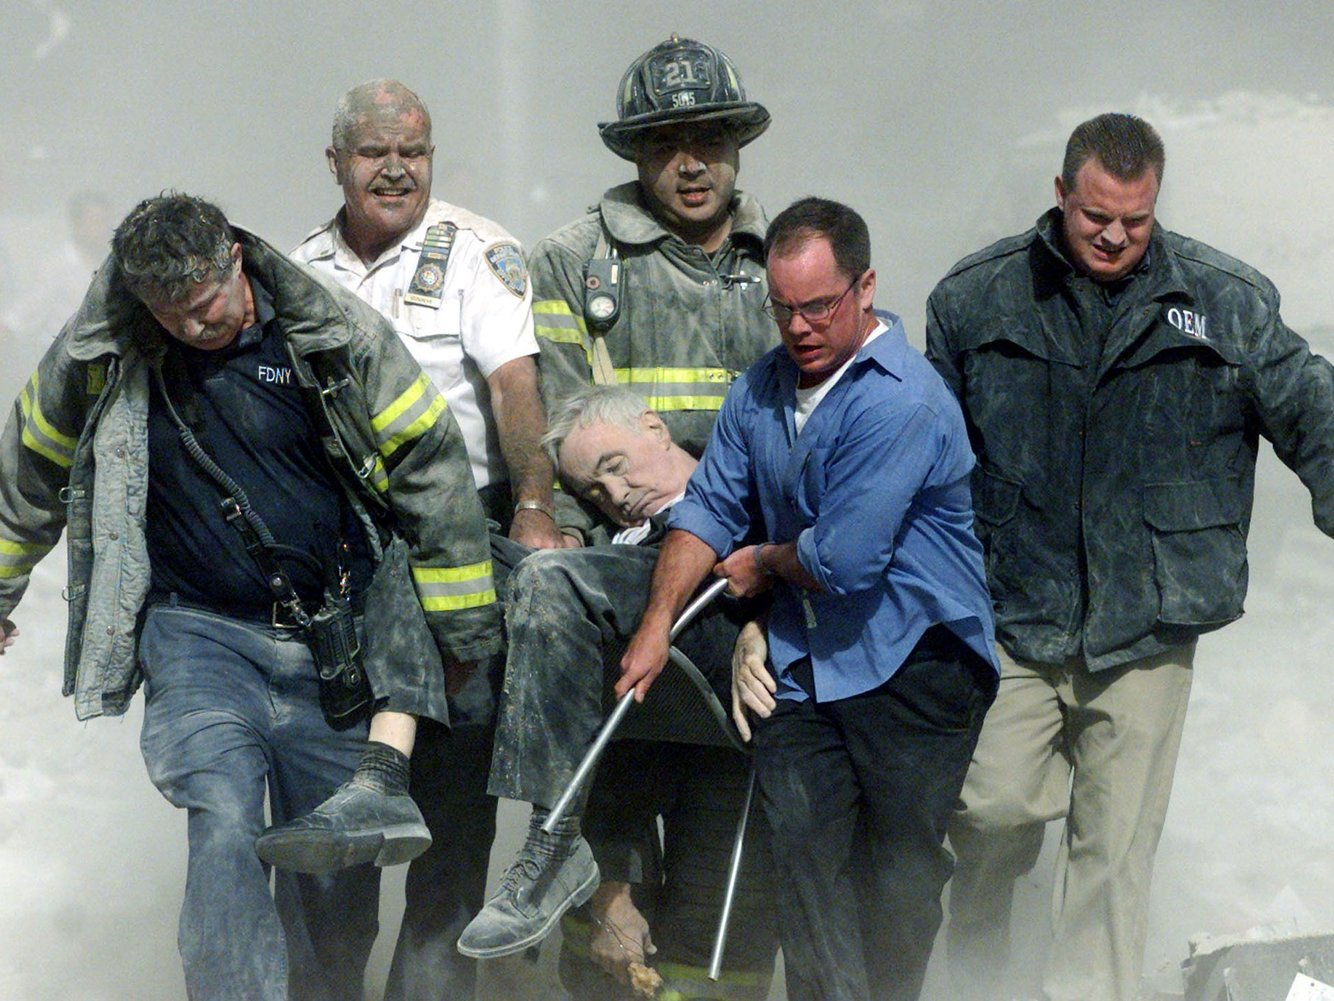 Video: Why 1,000 Bodies Of 9/11 Victims Were Never Found